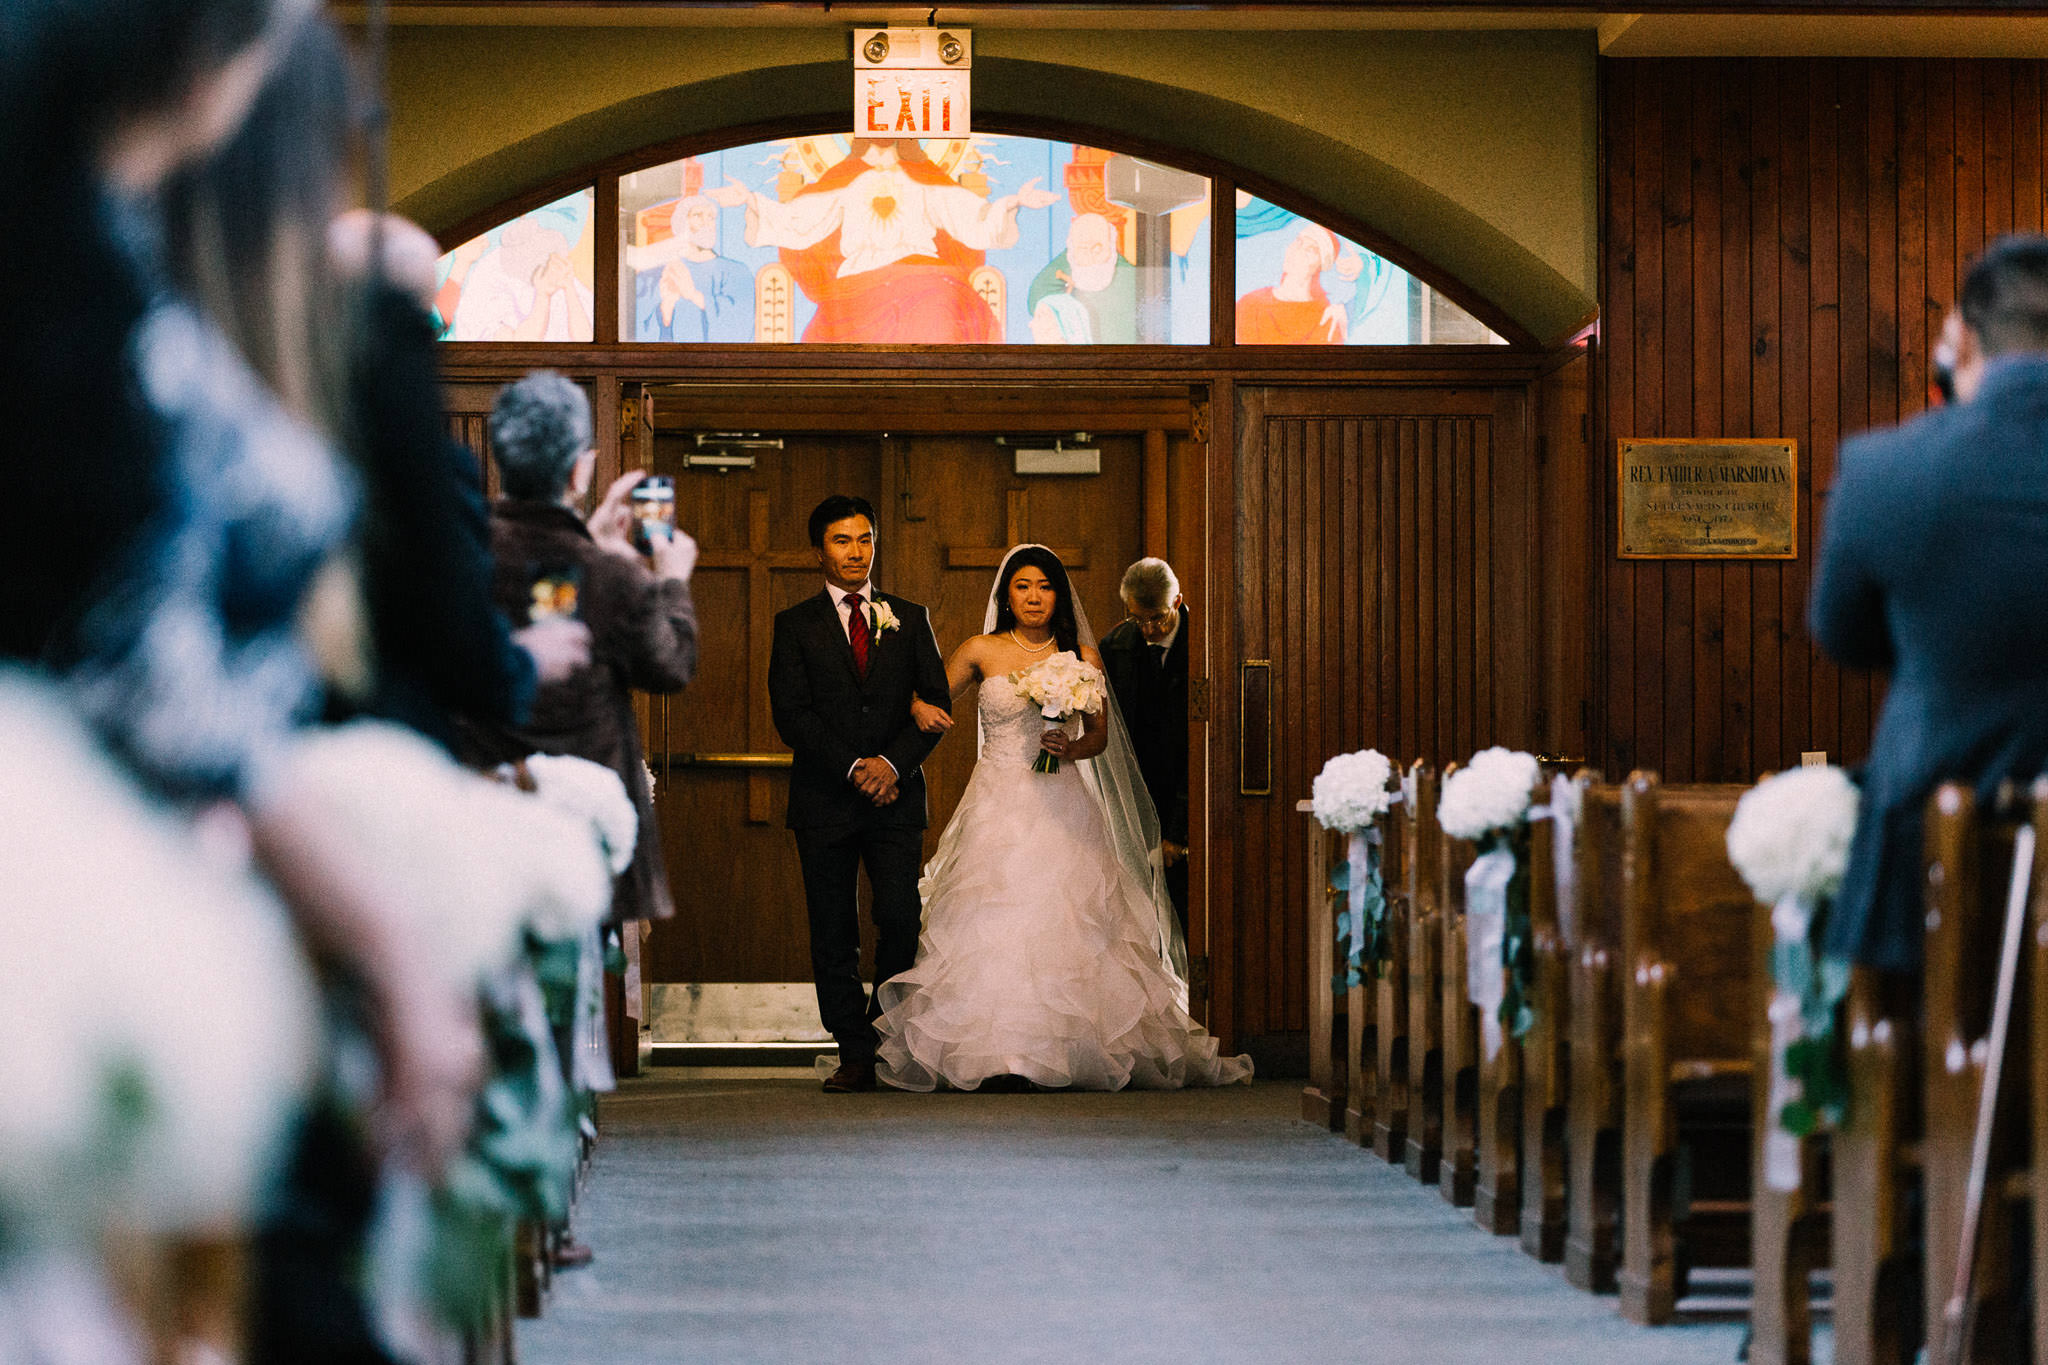 Vaughn wedding at Chateau Le Jardin by Max Wong Photo (26)